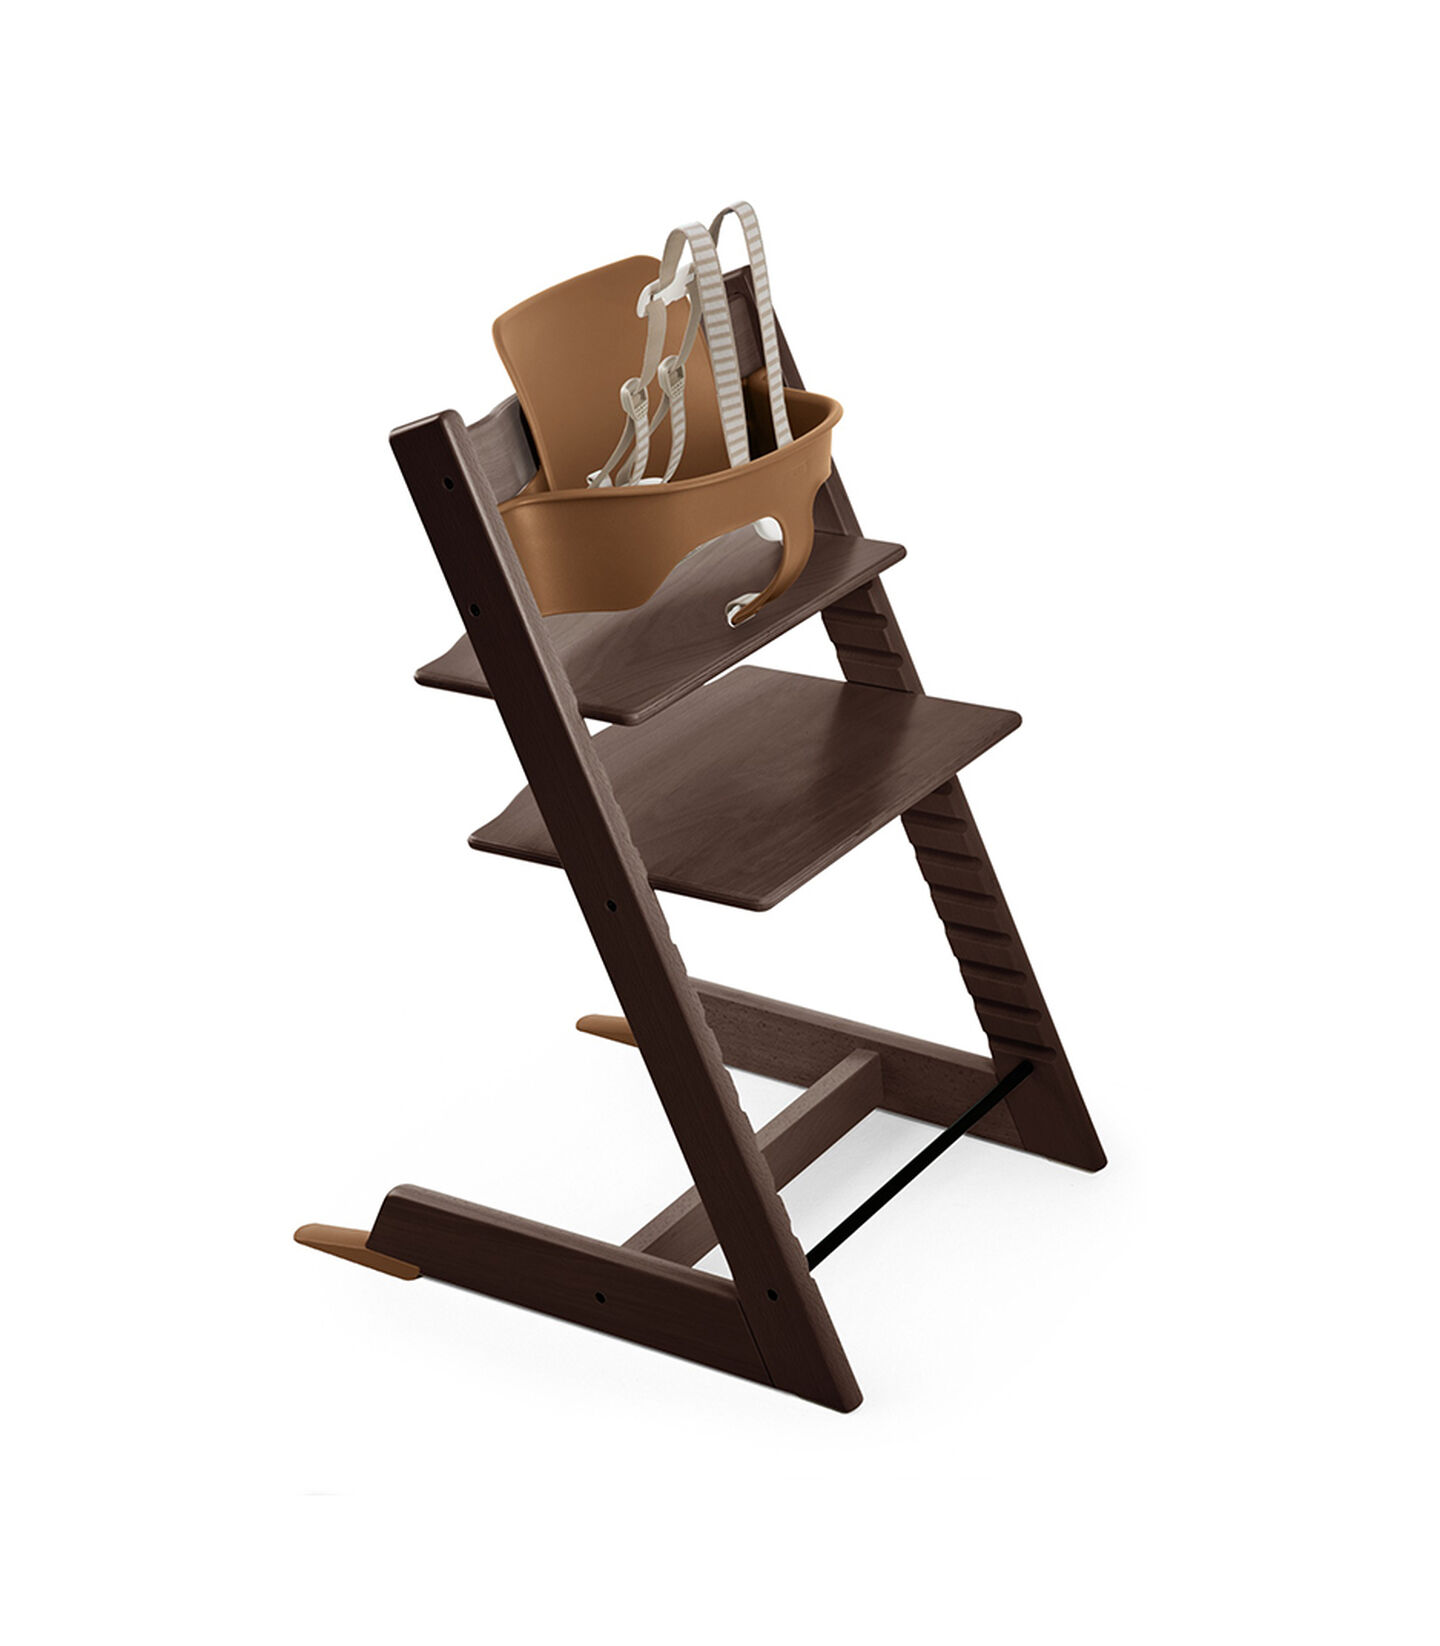 Tripp Trapp® Natural with Tripp Trapp® Baby Set, Walnut Brown. USA version.